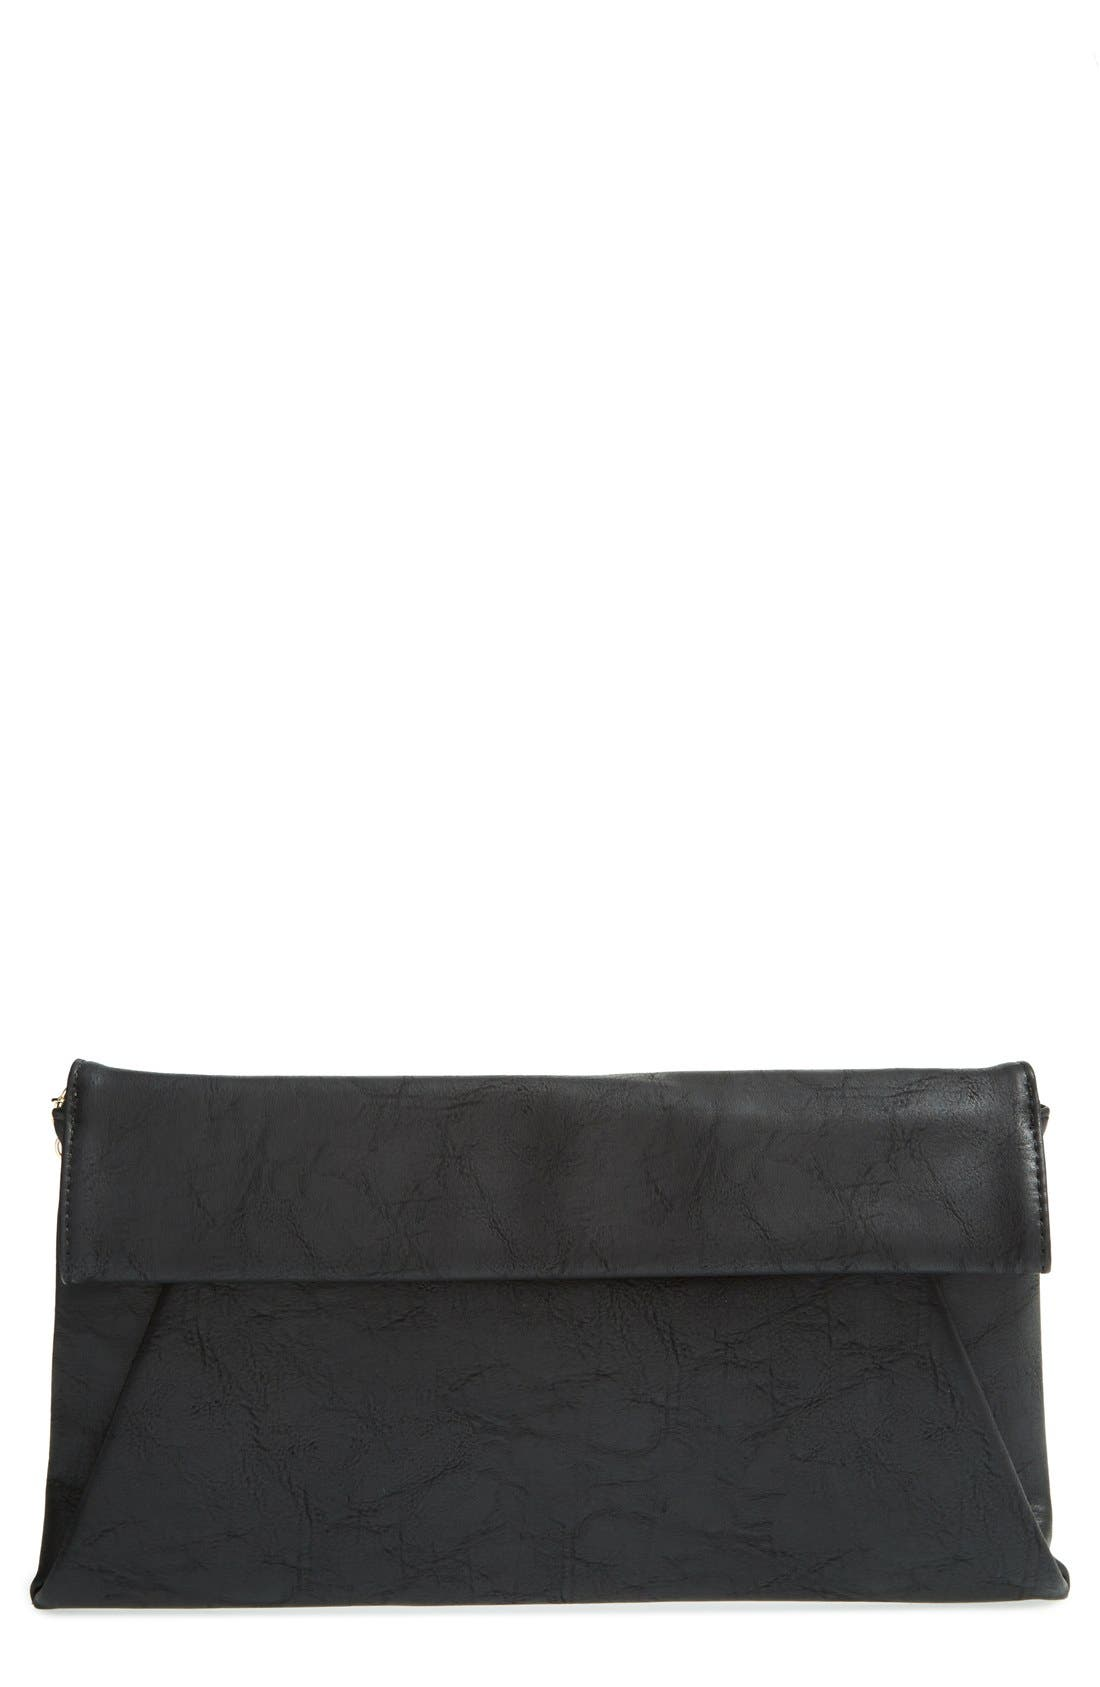 Alternate Image 1 Selected - Tildon 'Emilia' Foldover Clutch